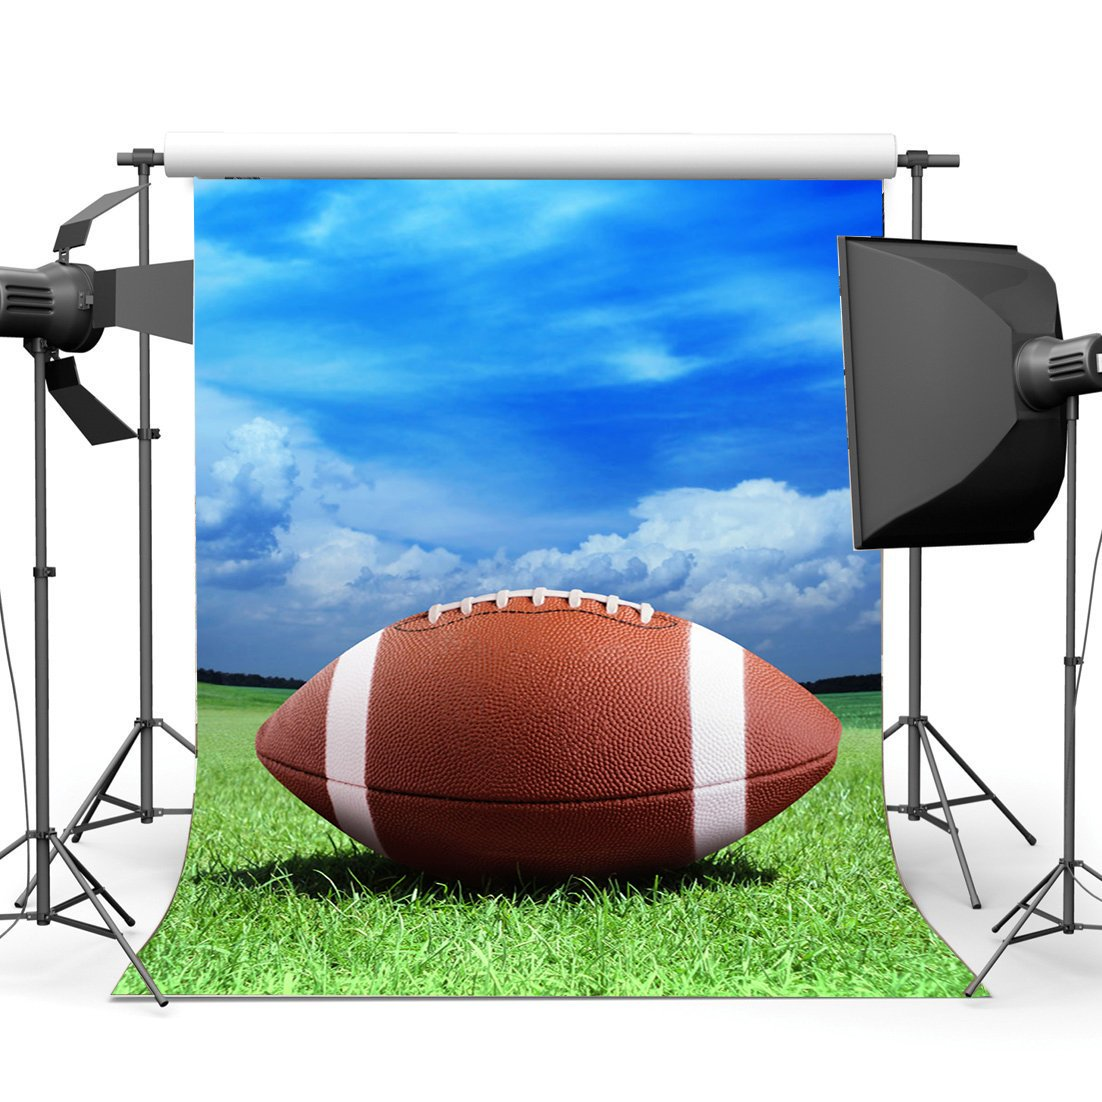 American Soccer Backdrop Football Field Backdrops Blue Sky White Cloud Green Grass Meadow Sports Background-in Photo Studio Accessories from Consumer Electronics